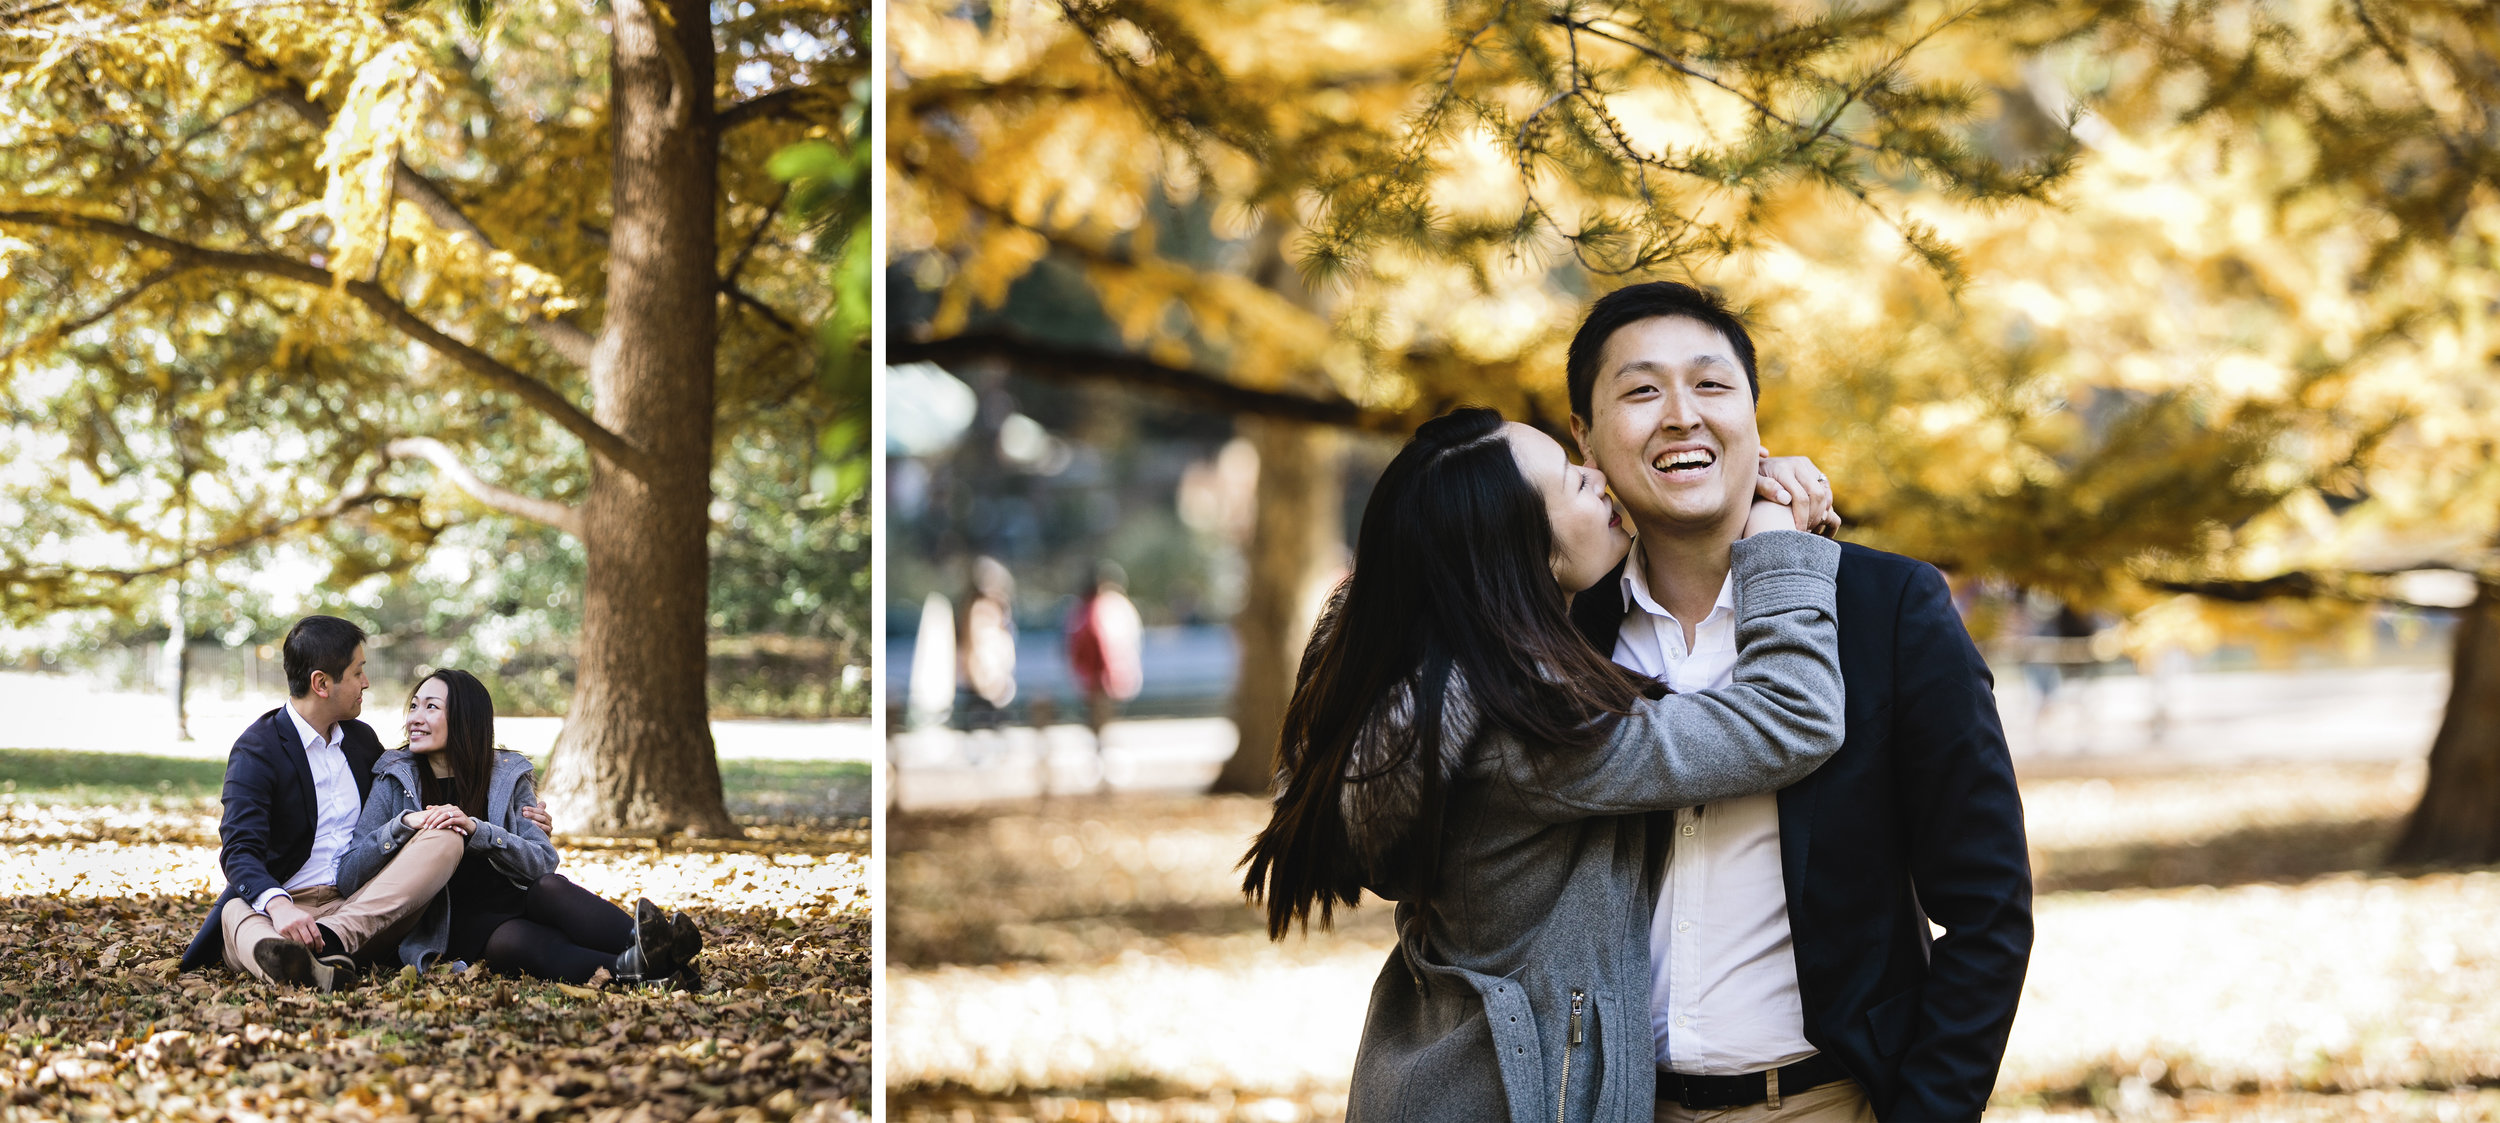 celestehernandez - nyc-central park engagement016.jpg